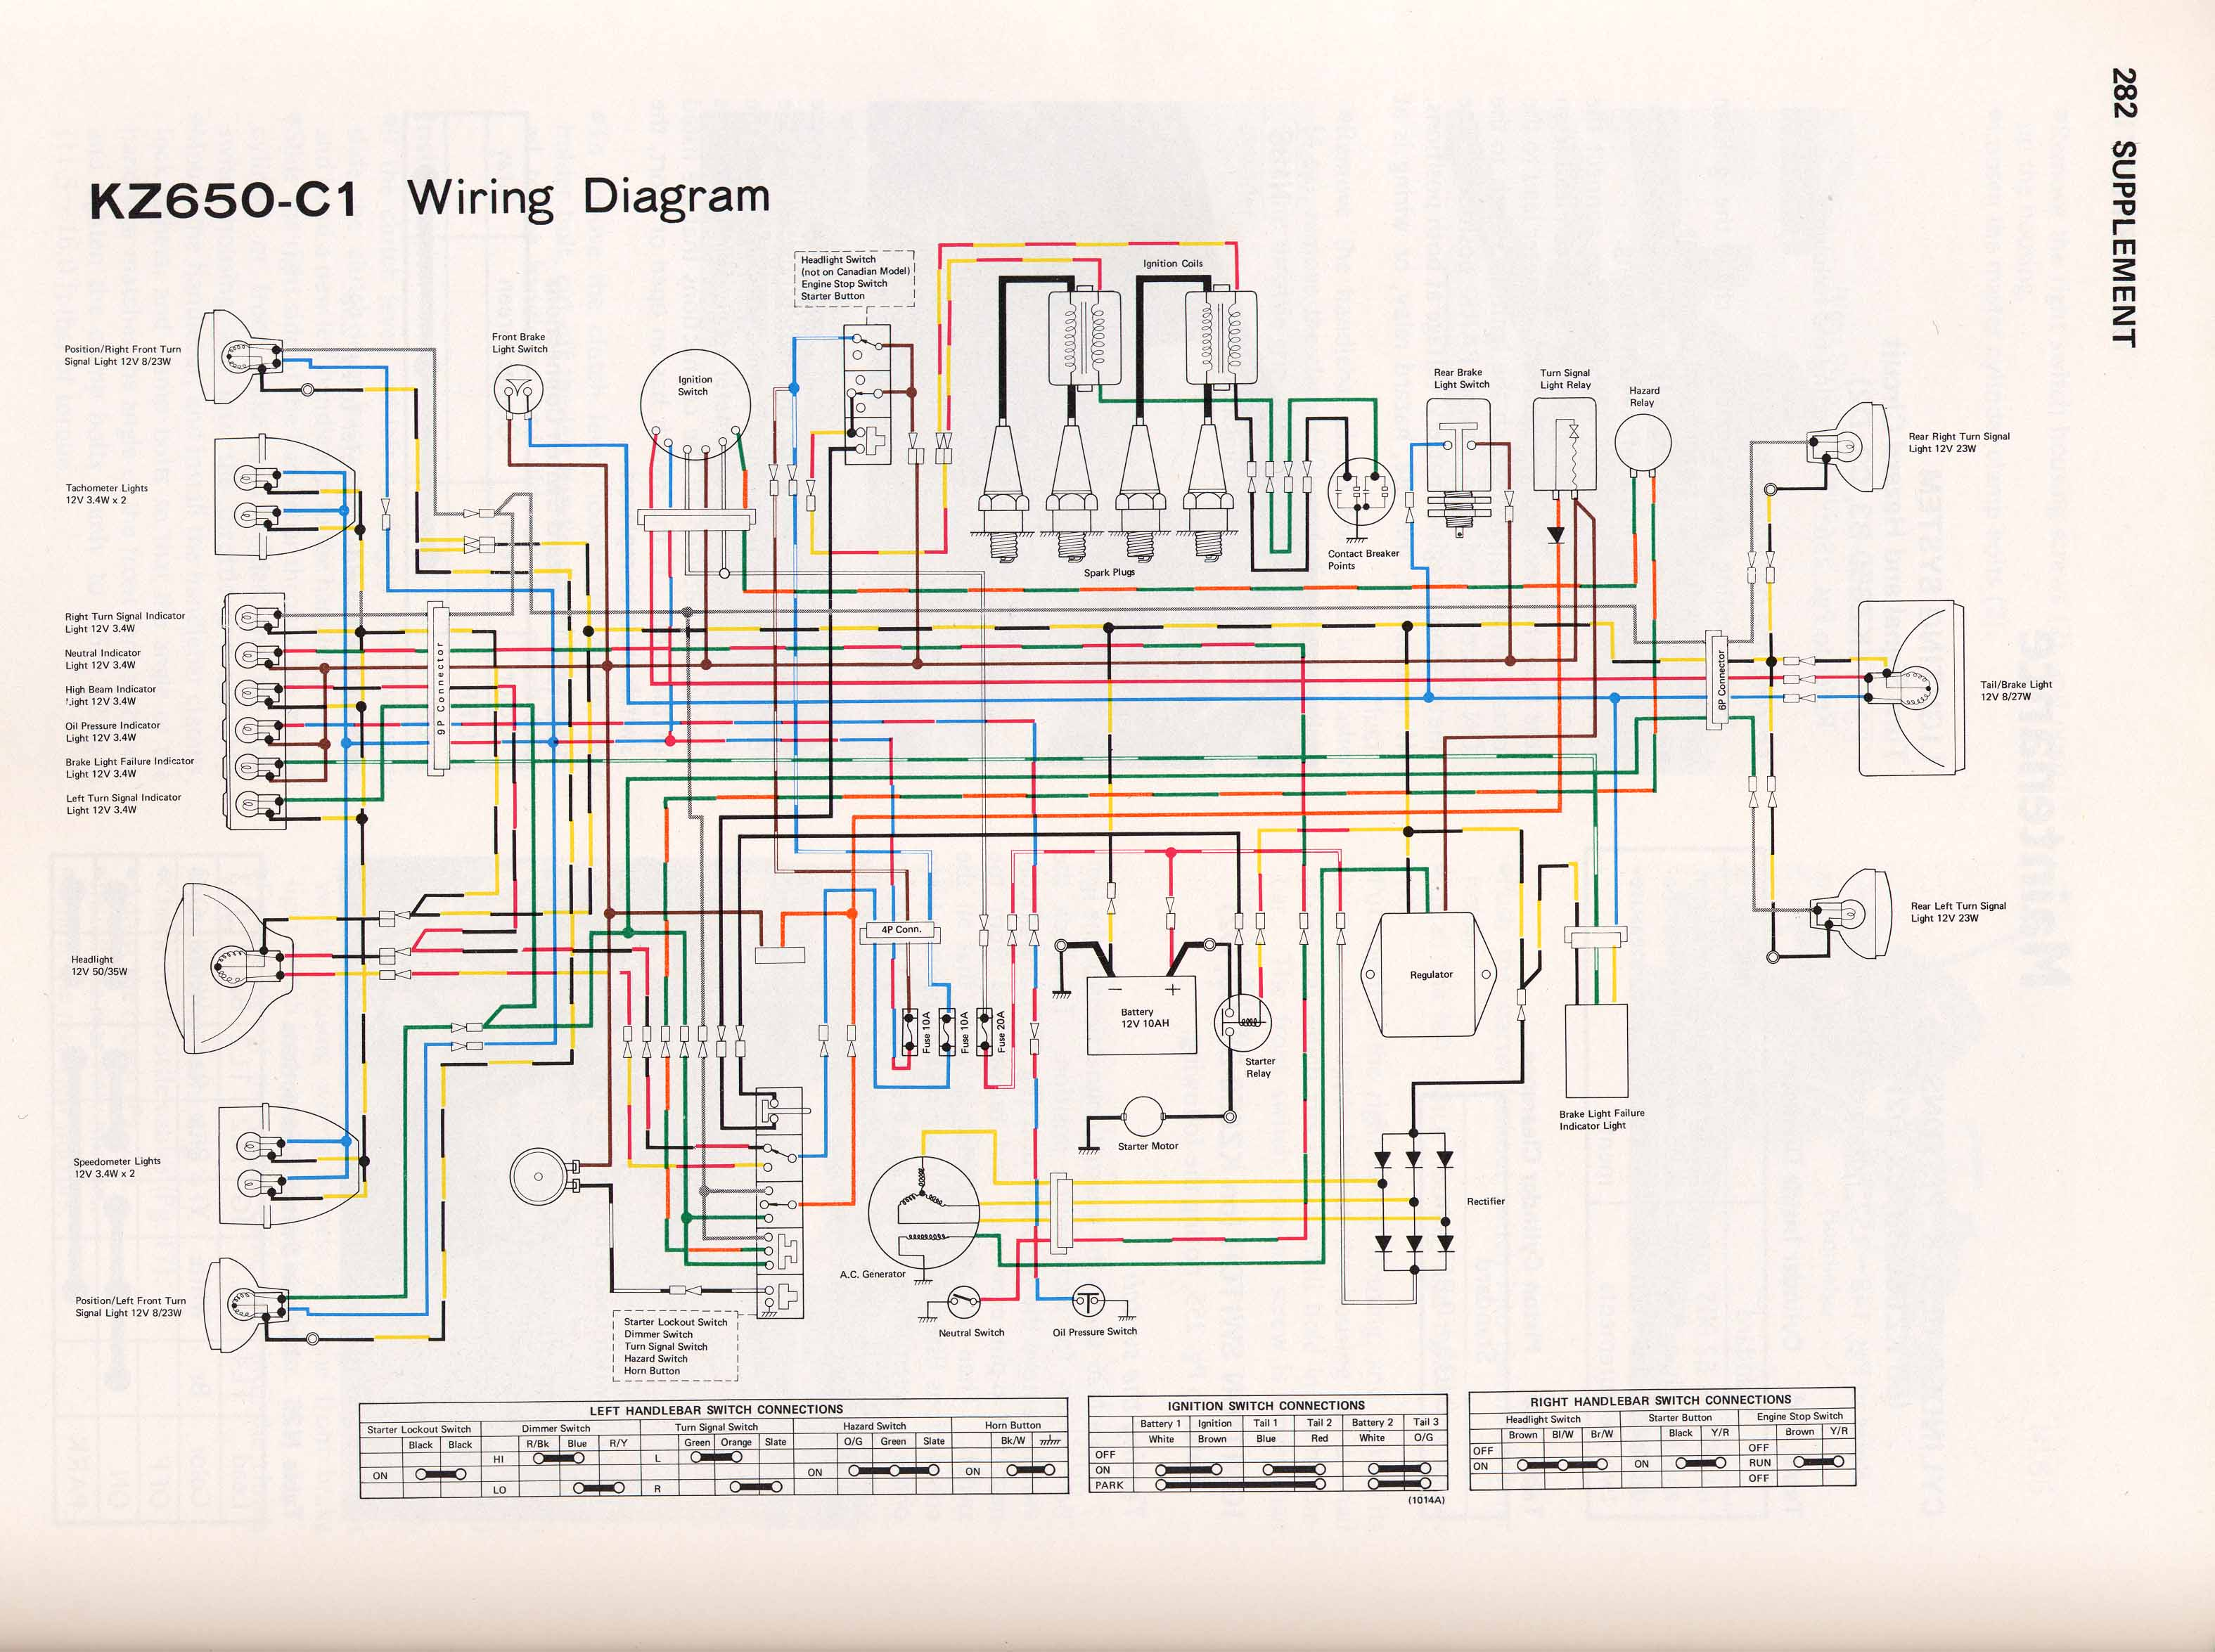 KZ650 C1 kz650 info wiring diagrams 1980 kawasaki kz750 wiring diagram at virtualis.co